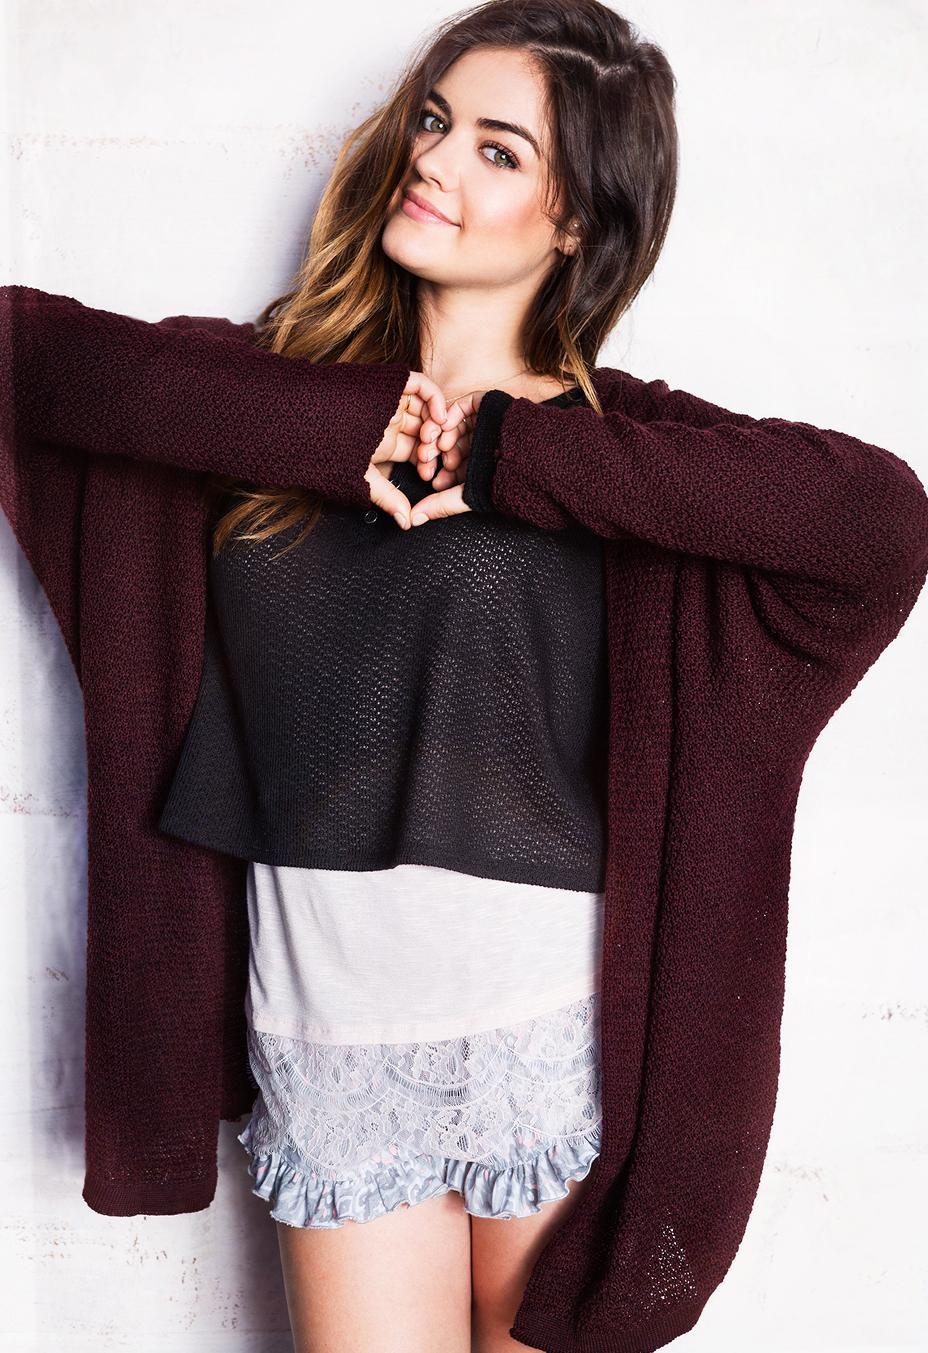 Lucy Hale - Hollister Clothing Photoshoot 2014